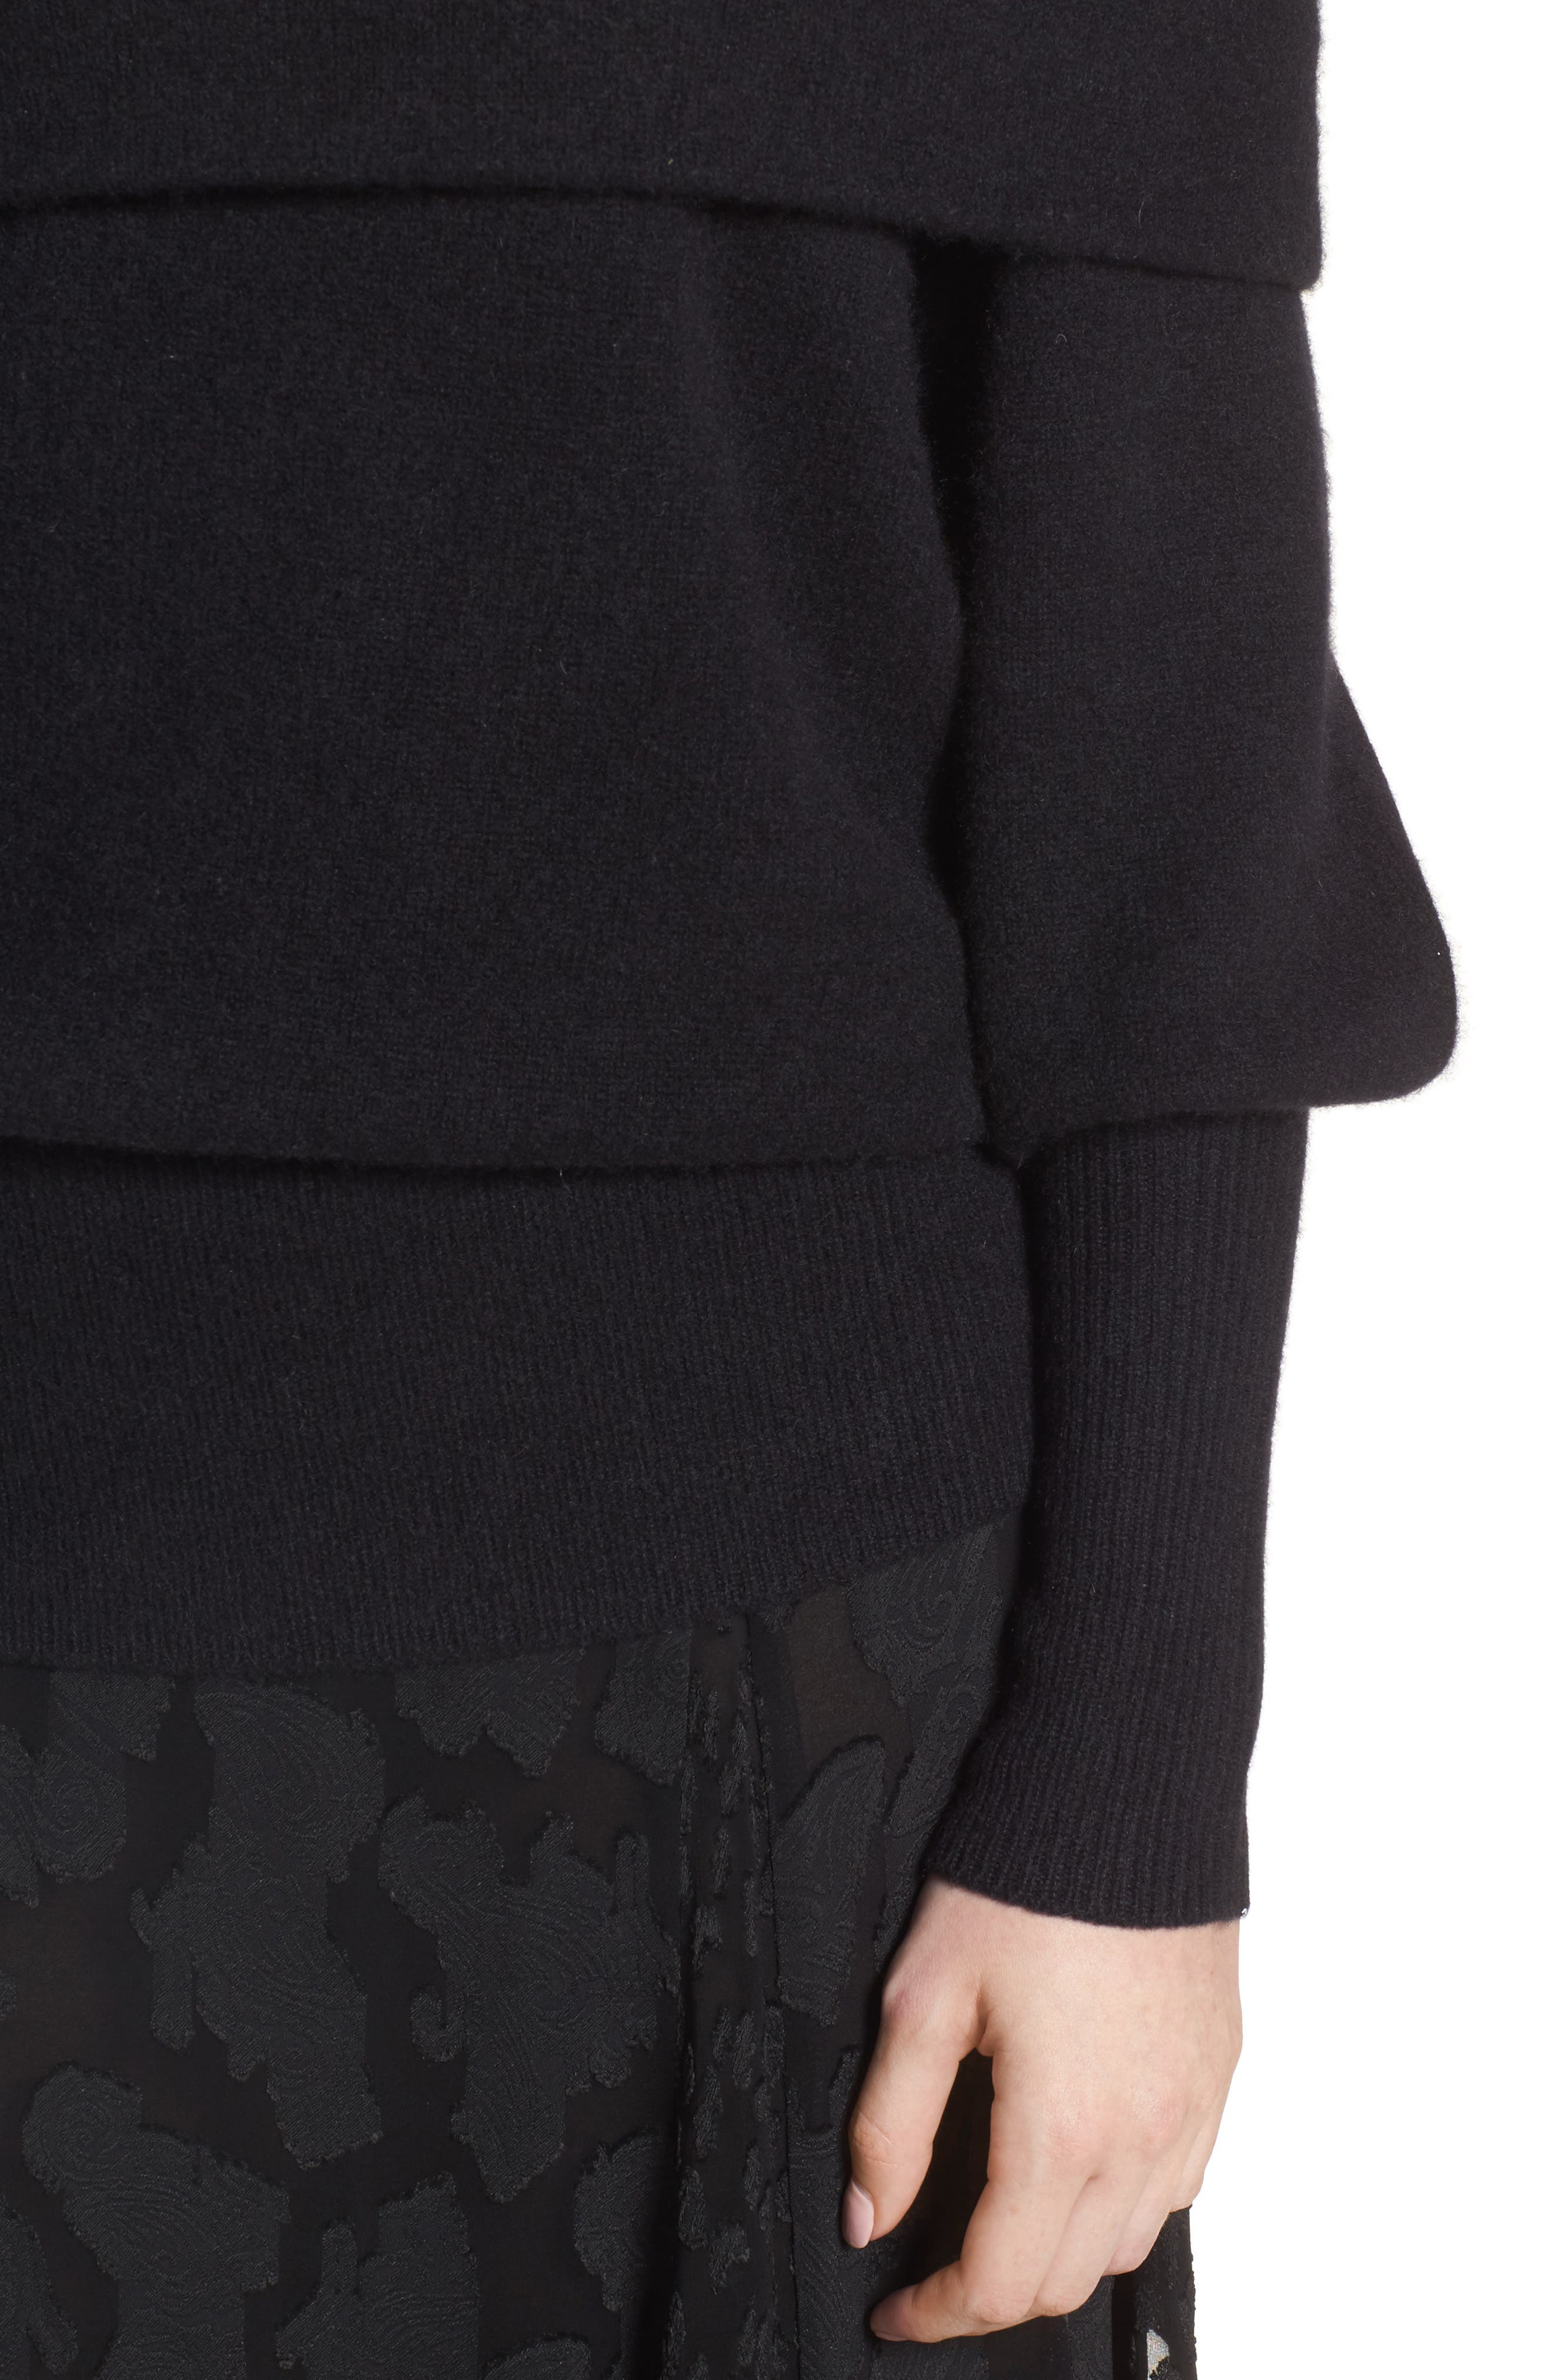 Convertible Neck Cashmere Sweater,                             Alternate thumbnail 4, color,                             001